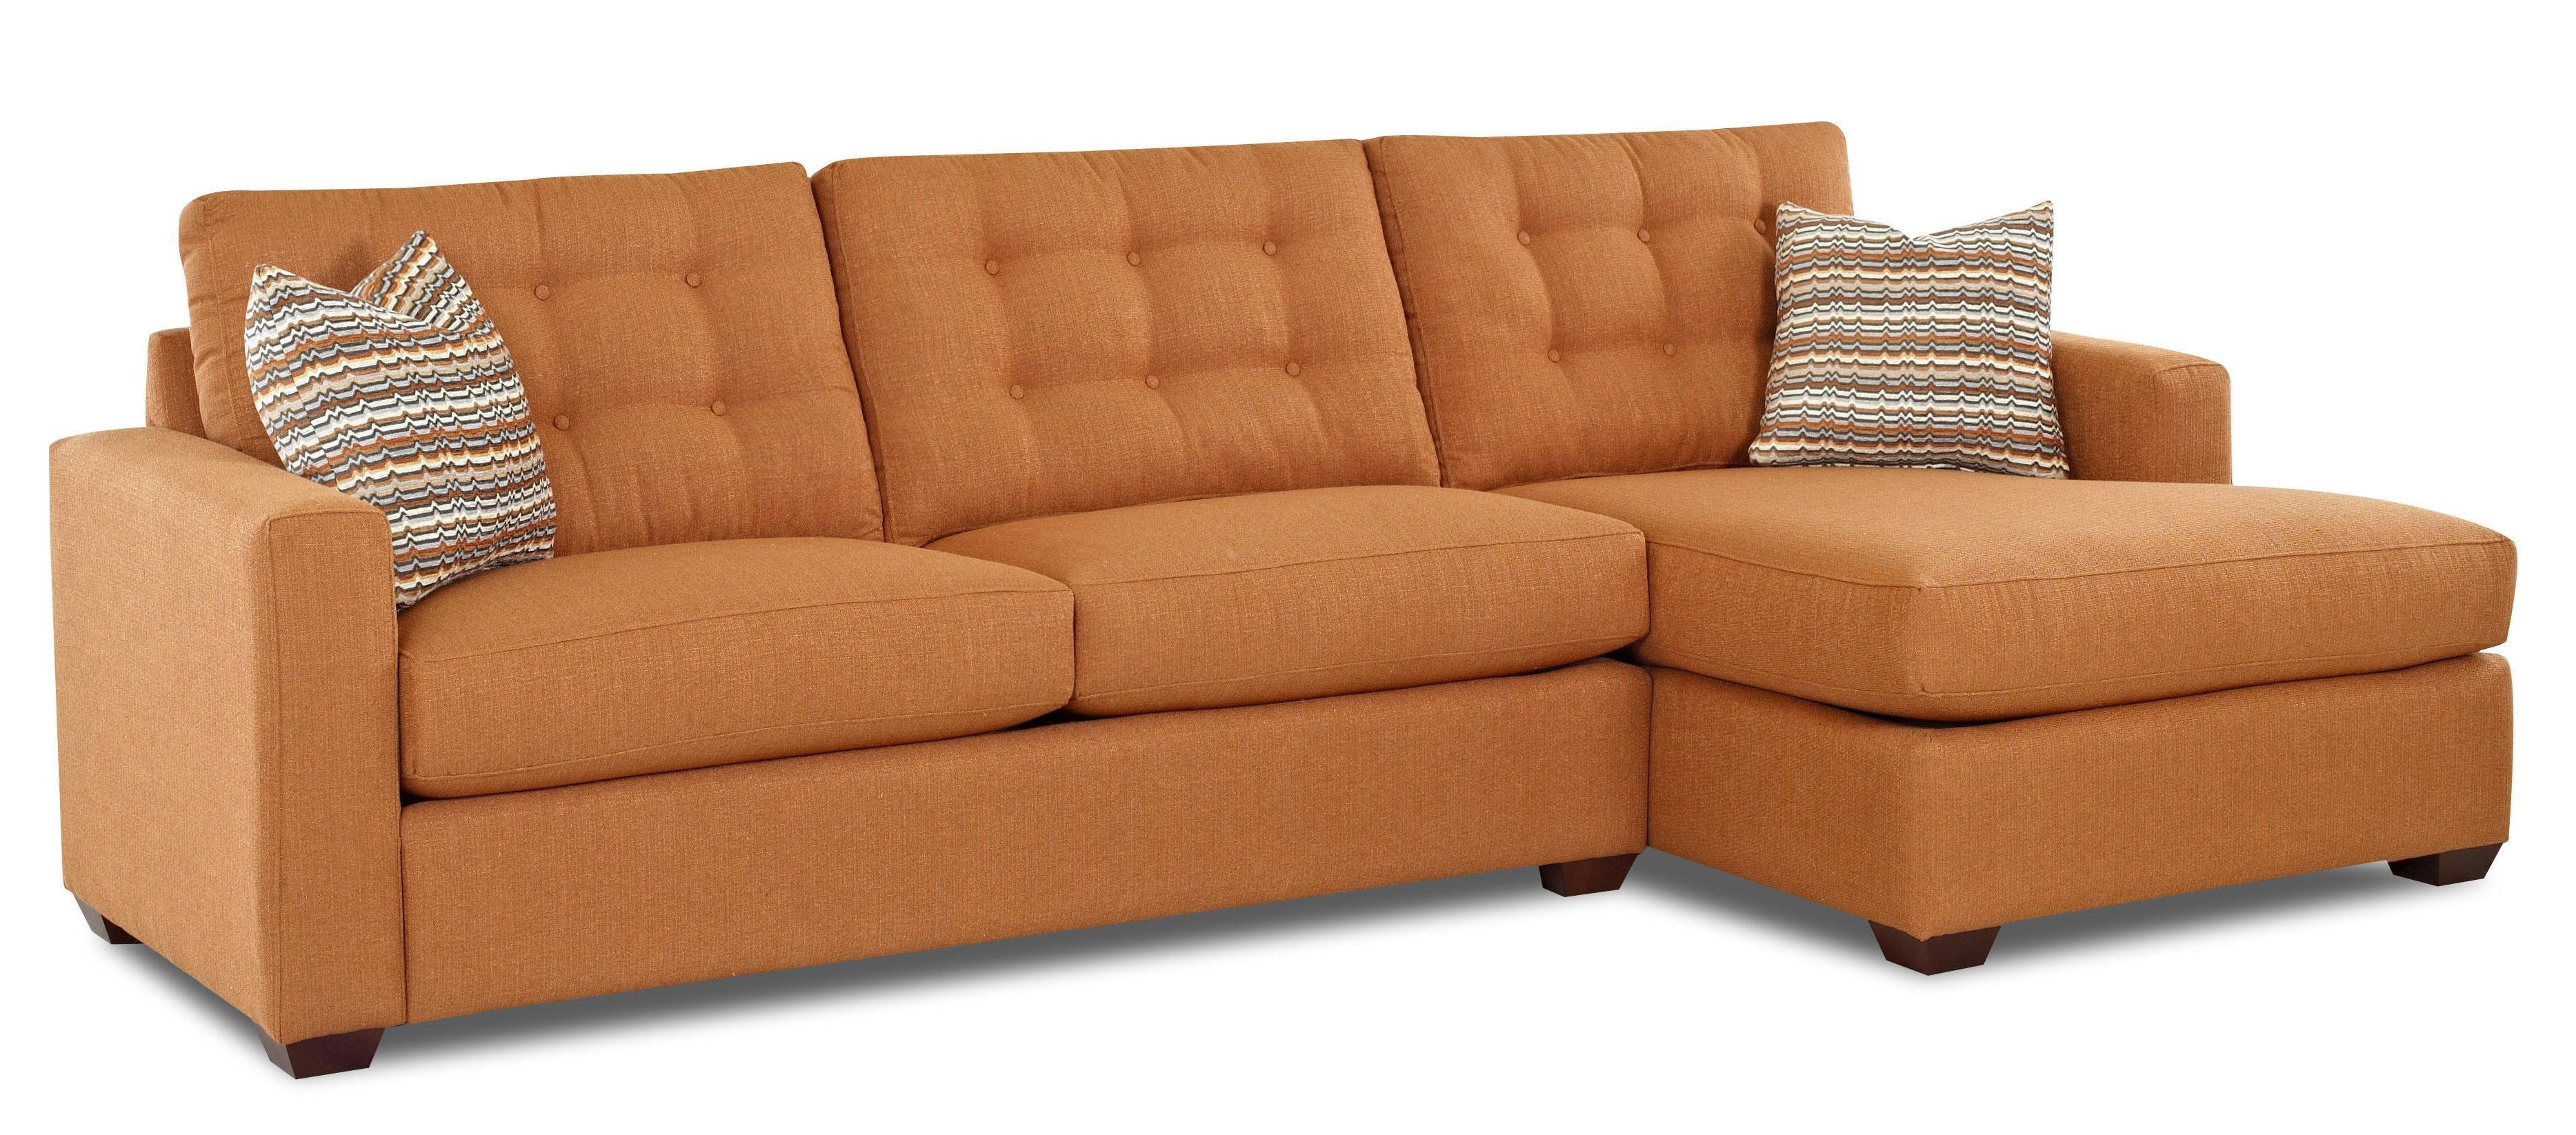 Fashionable Decoration In Sofa Chaise Lounge With Chaise Lounge Sleeper Sofa In Couch Chaise Lounges (View 7 of 15)